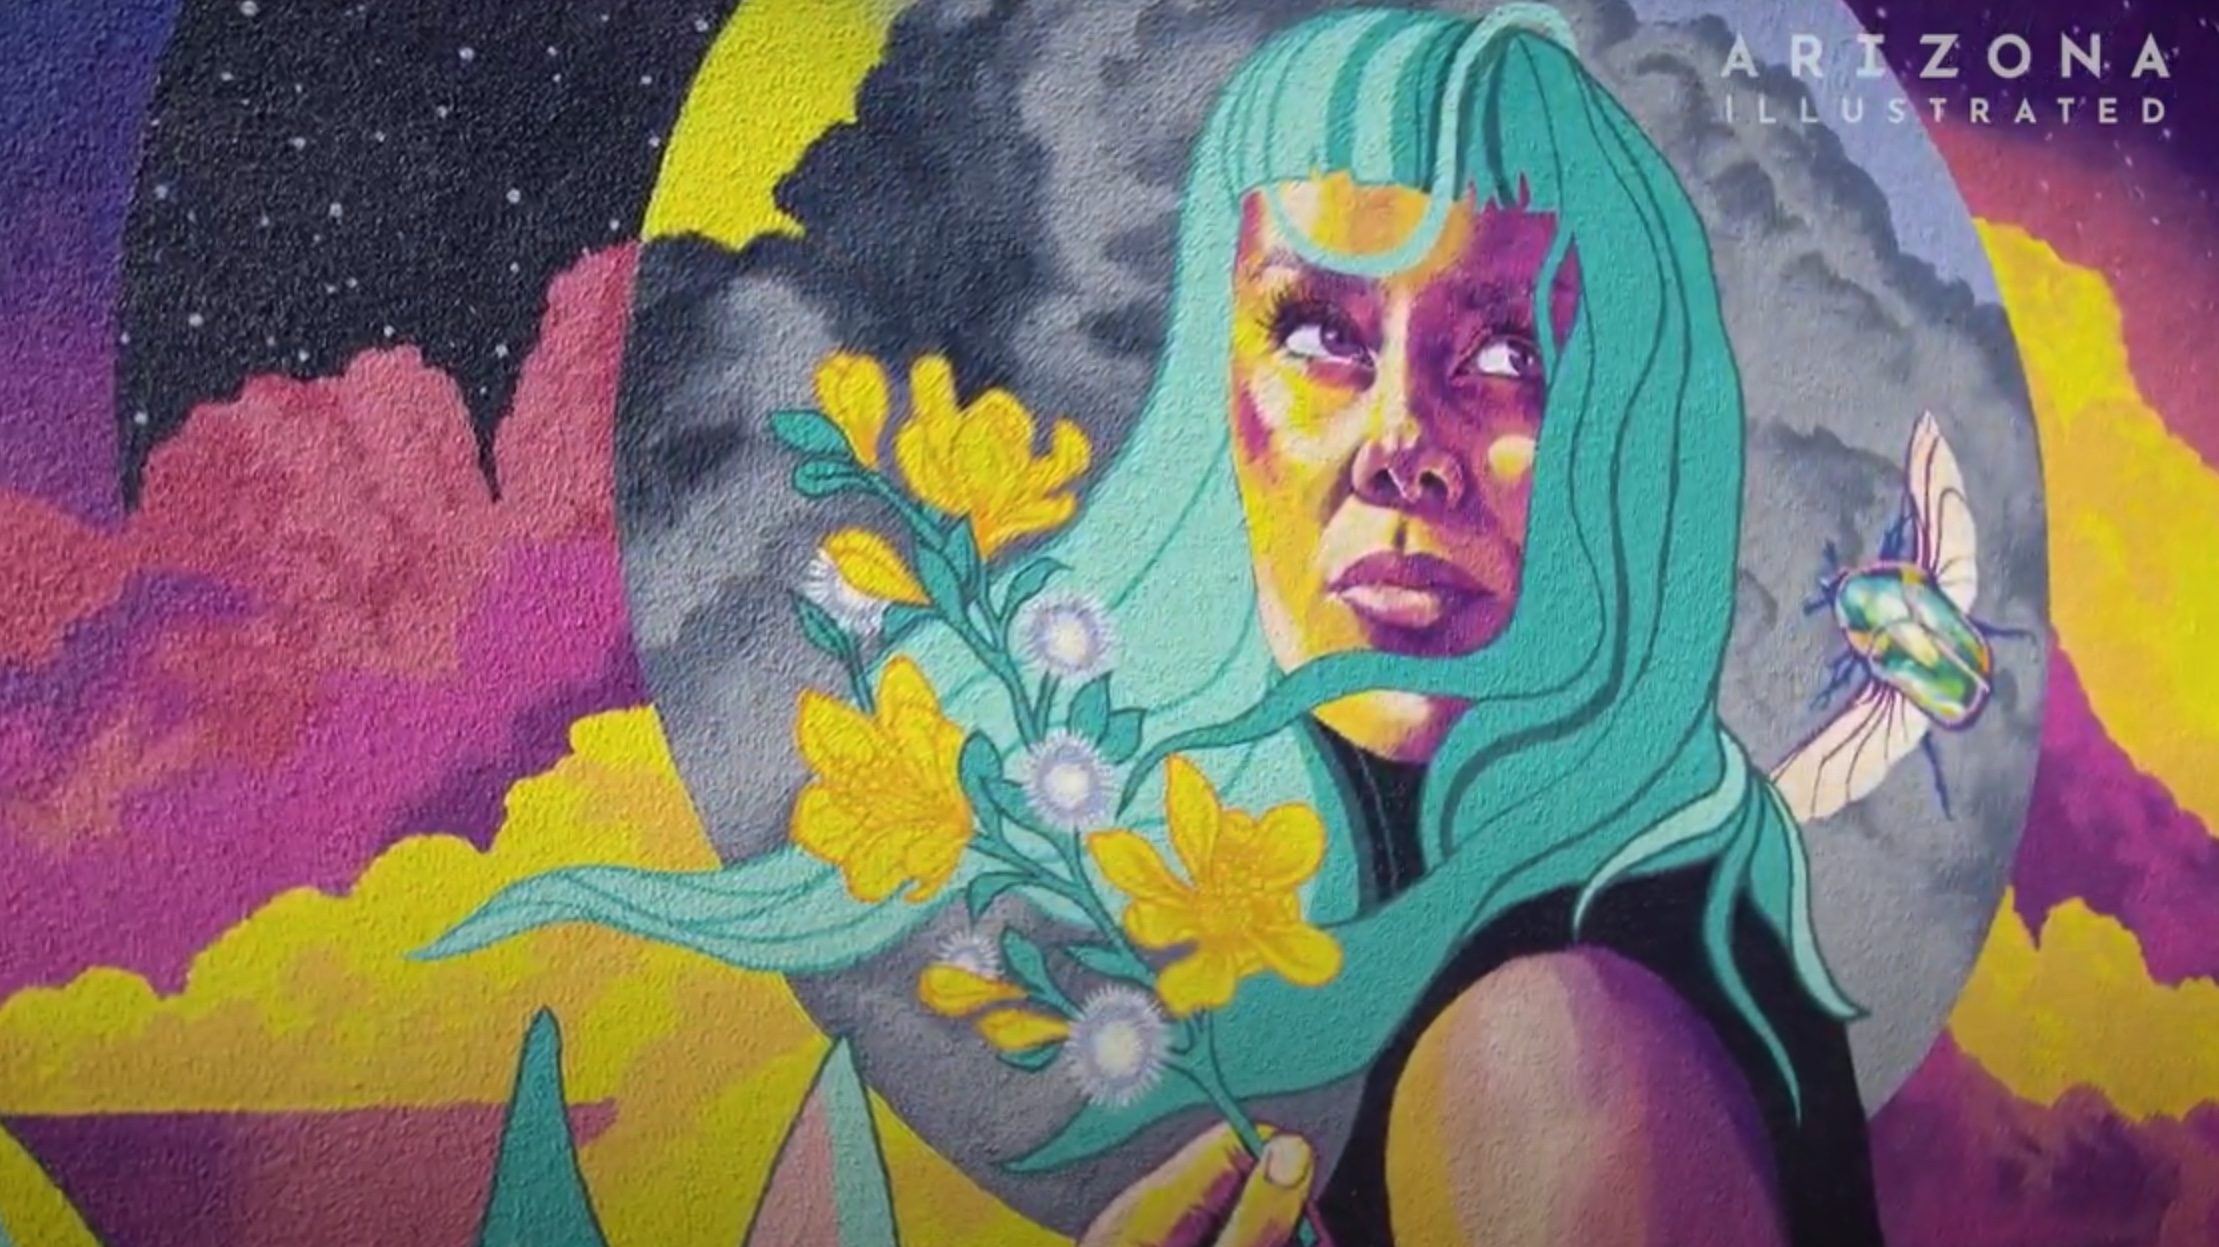 AZPM features School of Art's Jessica Gonzales evolution as 'The Muralist'